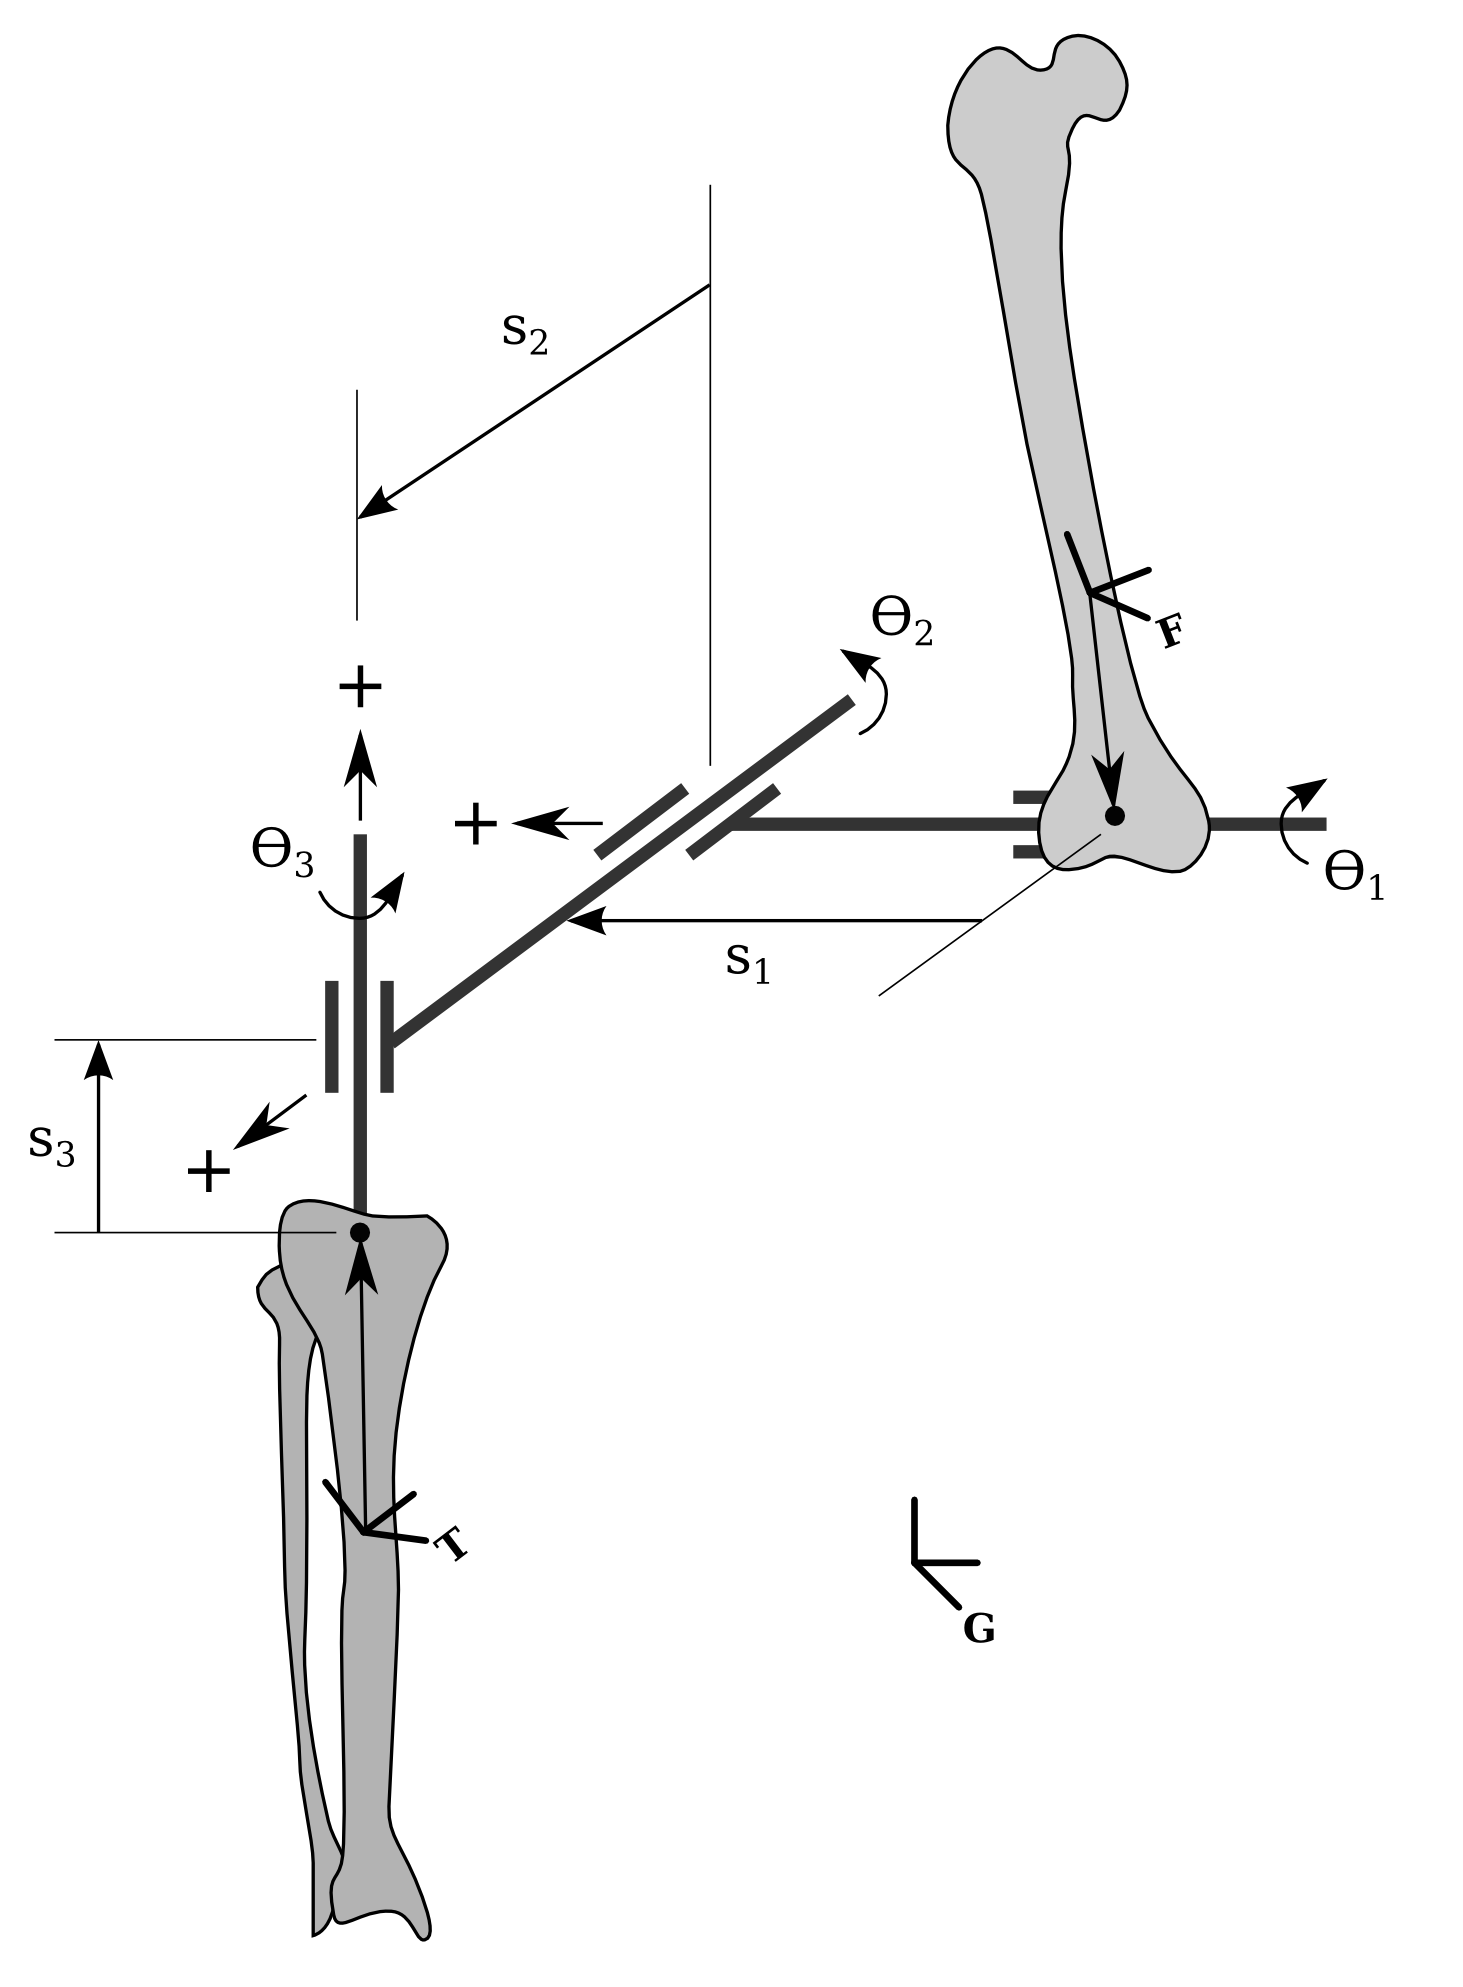 Open Knee(s) local and joint coordinate systems